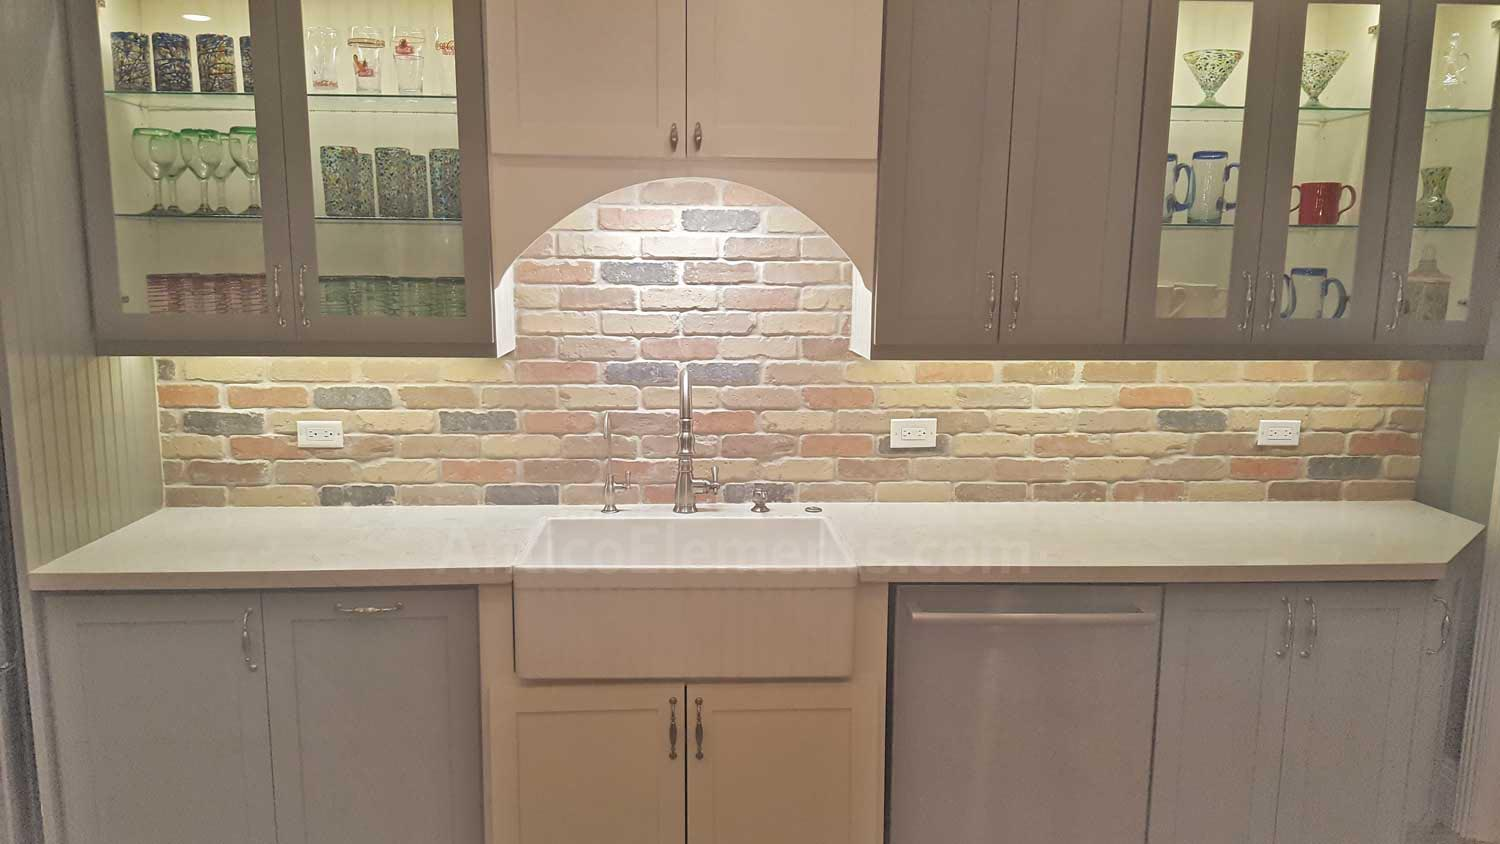 Brick Paneling In Kitchen Backsplash